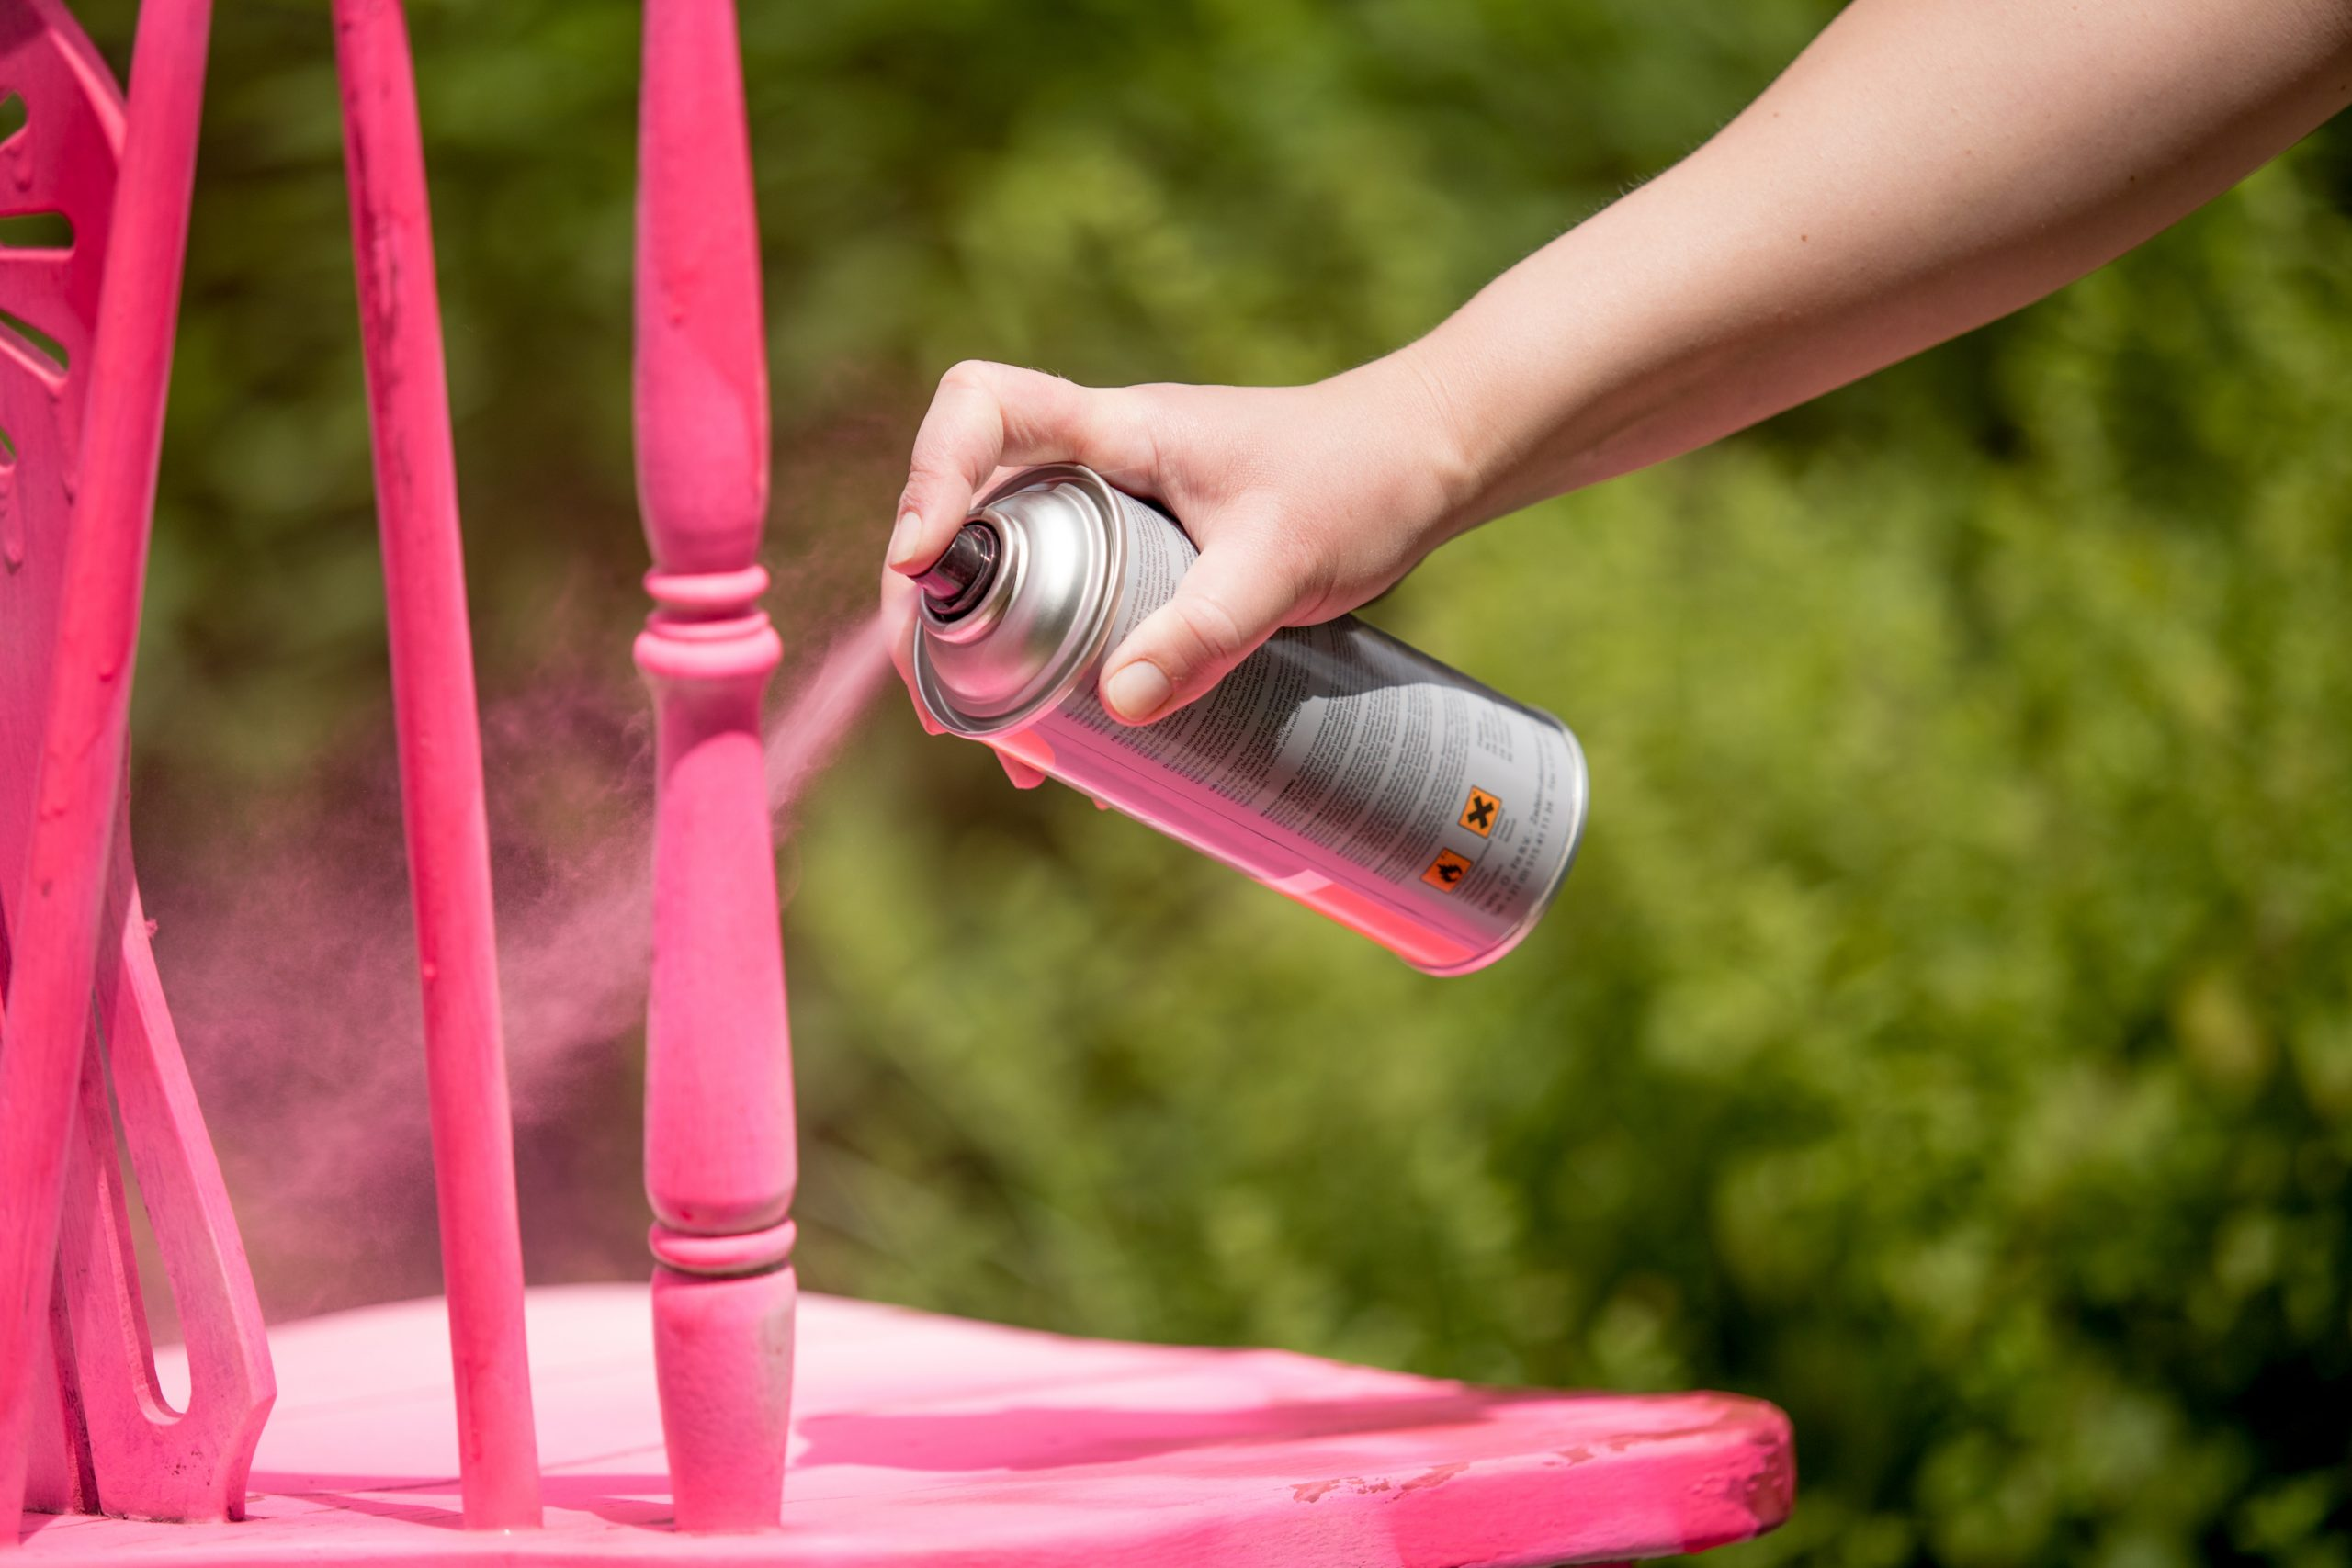 A chair being sprayed with pink spray paint. How to paint metal chairs.